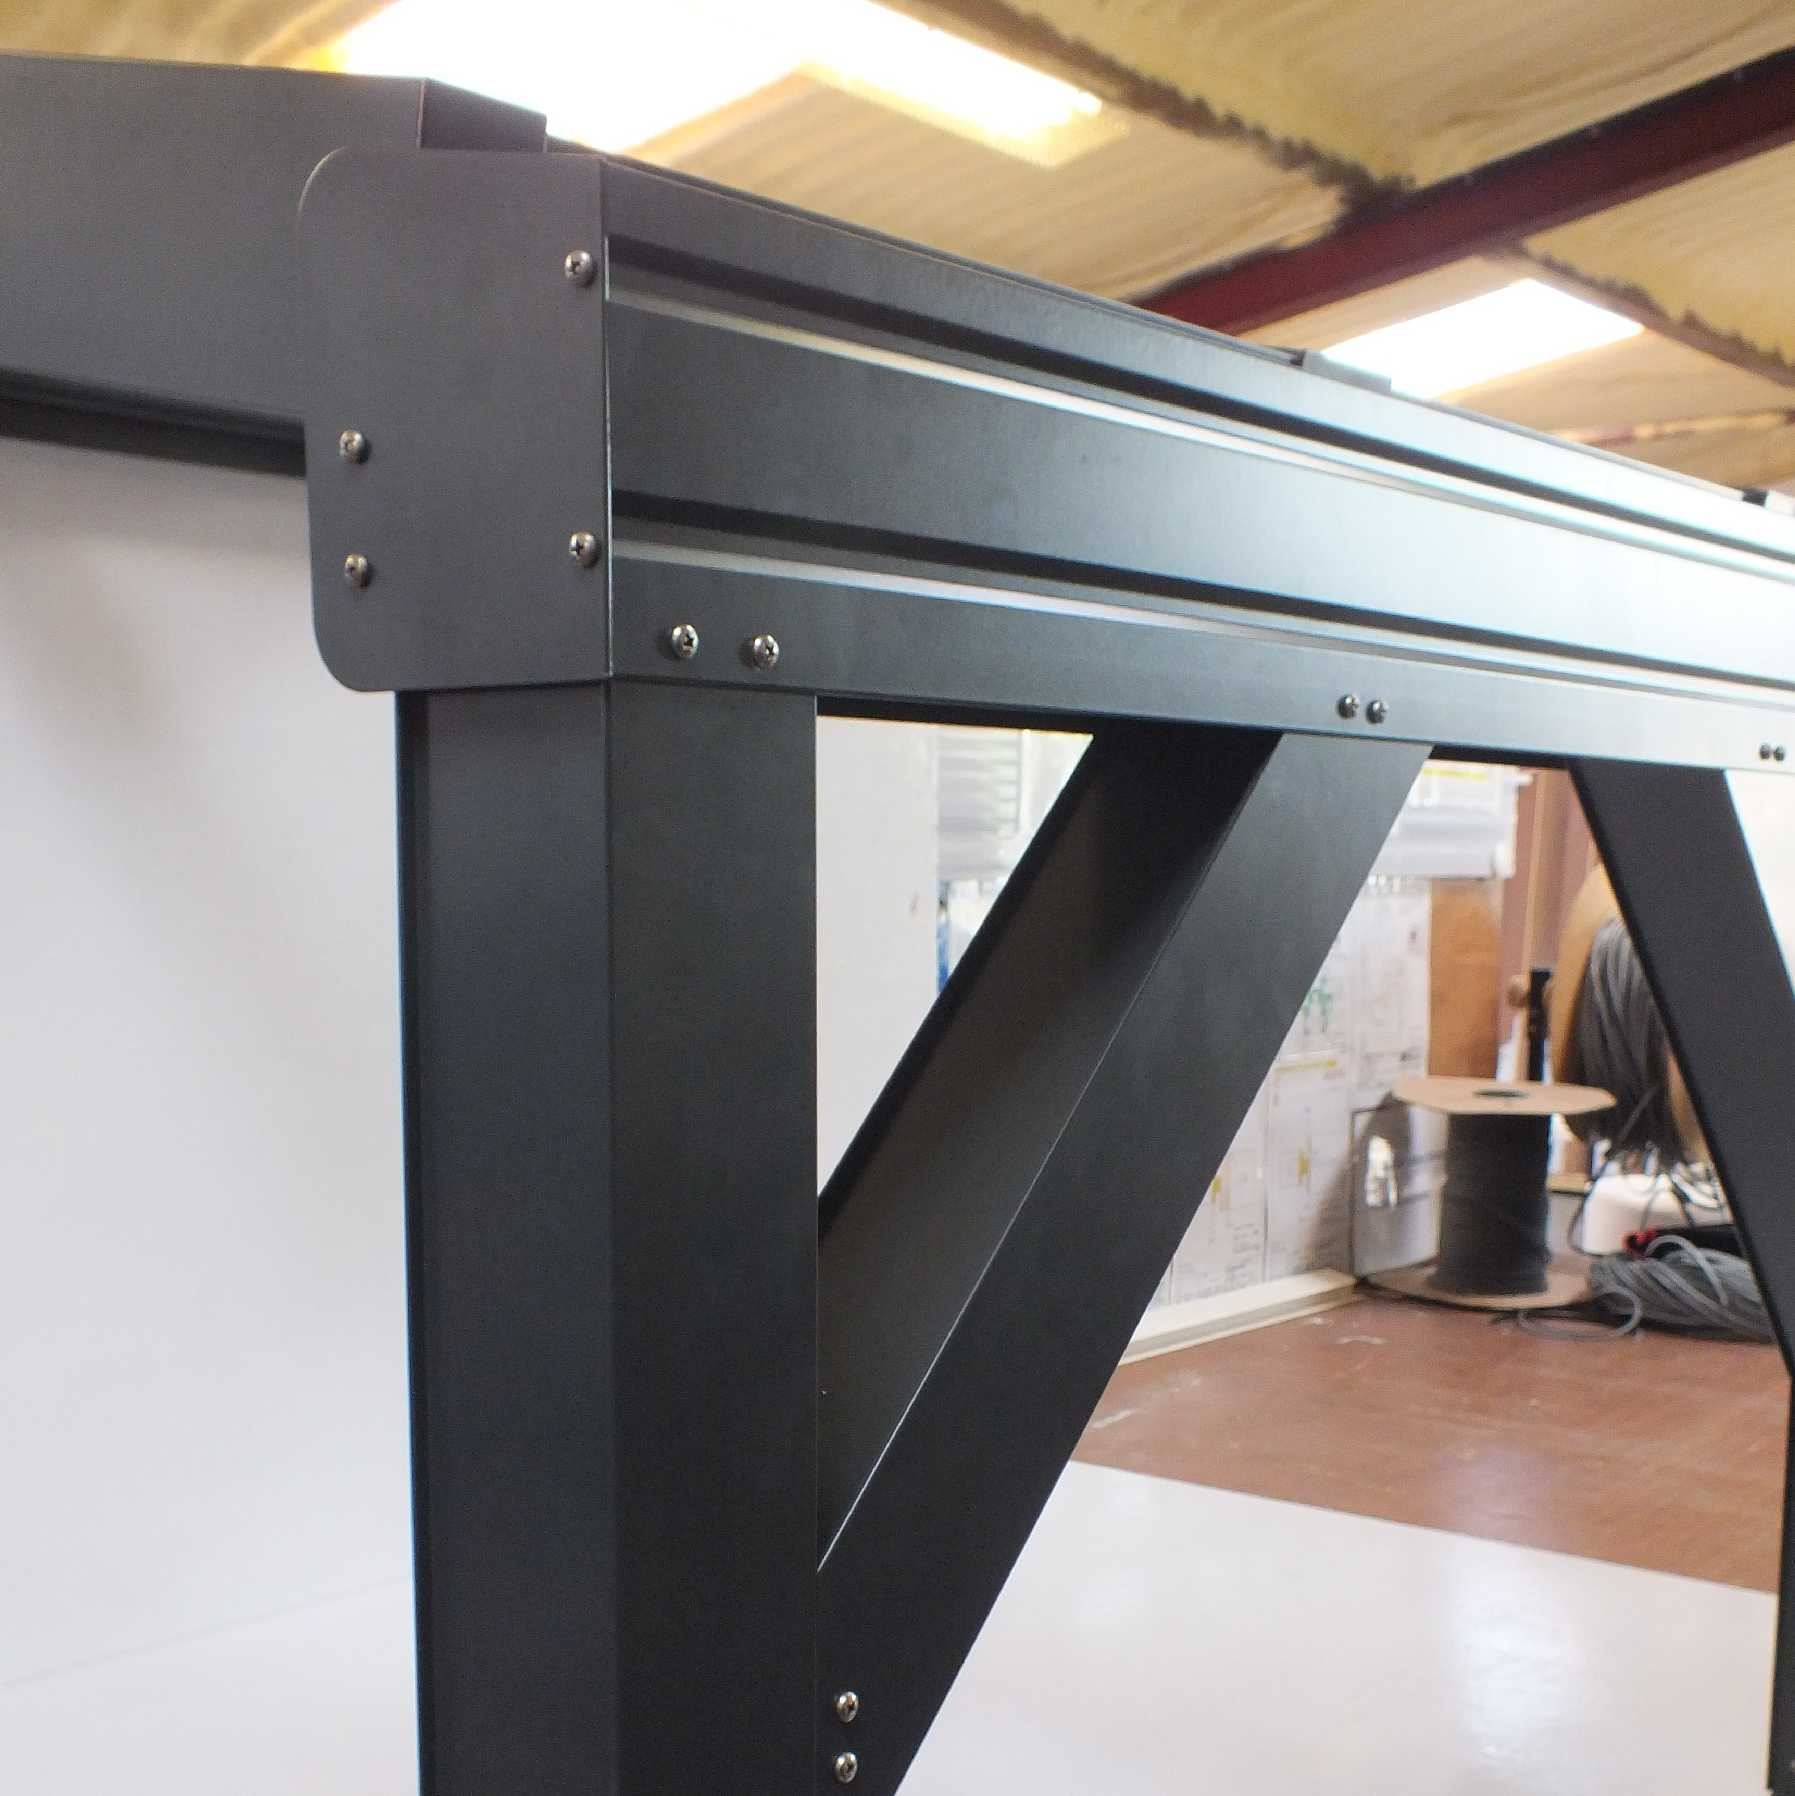 Omega Smart Lean-To Canopy, Anthracite Grey, UNGLAZED for 6mm Glazing - 2.8m (W) x 3.0m (P), (2) Supporting Posts from Omega Build